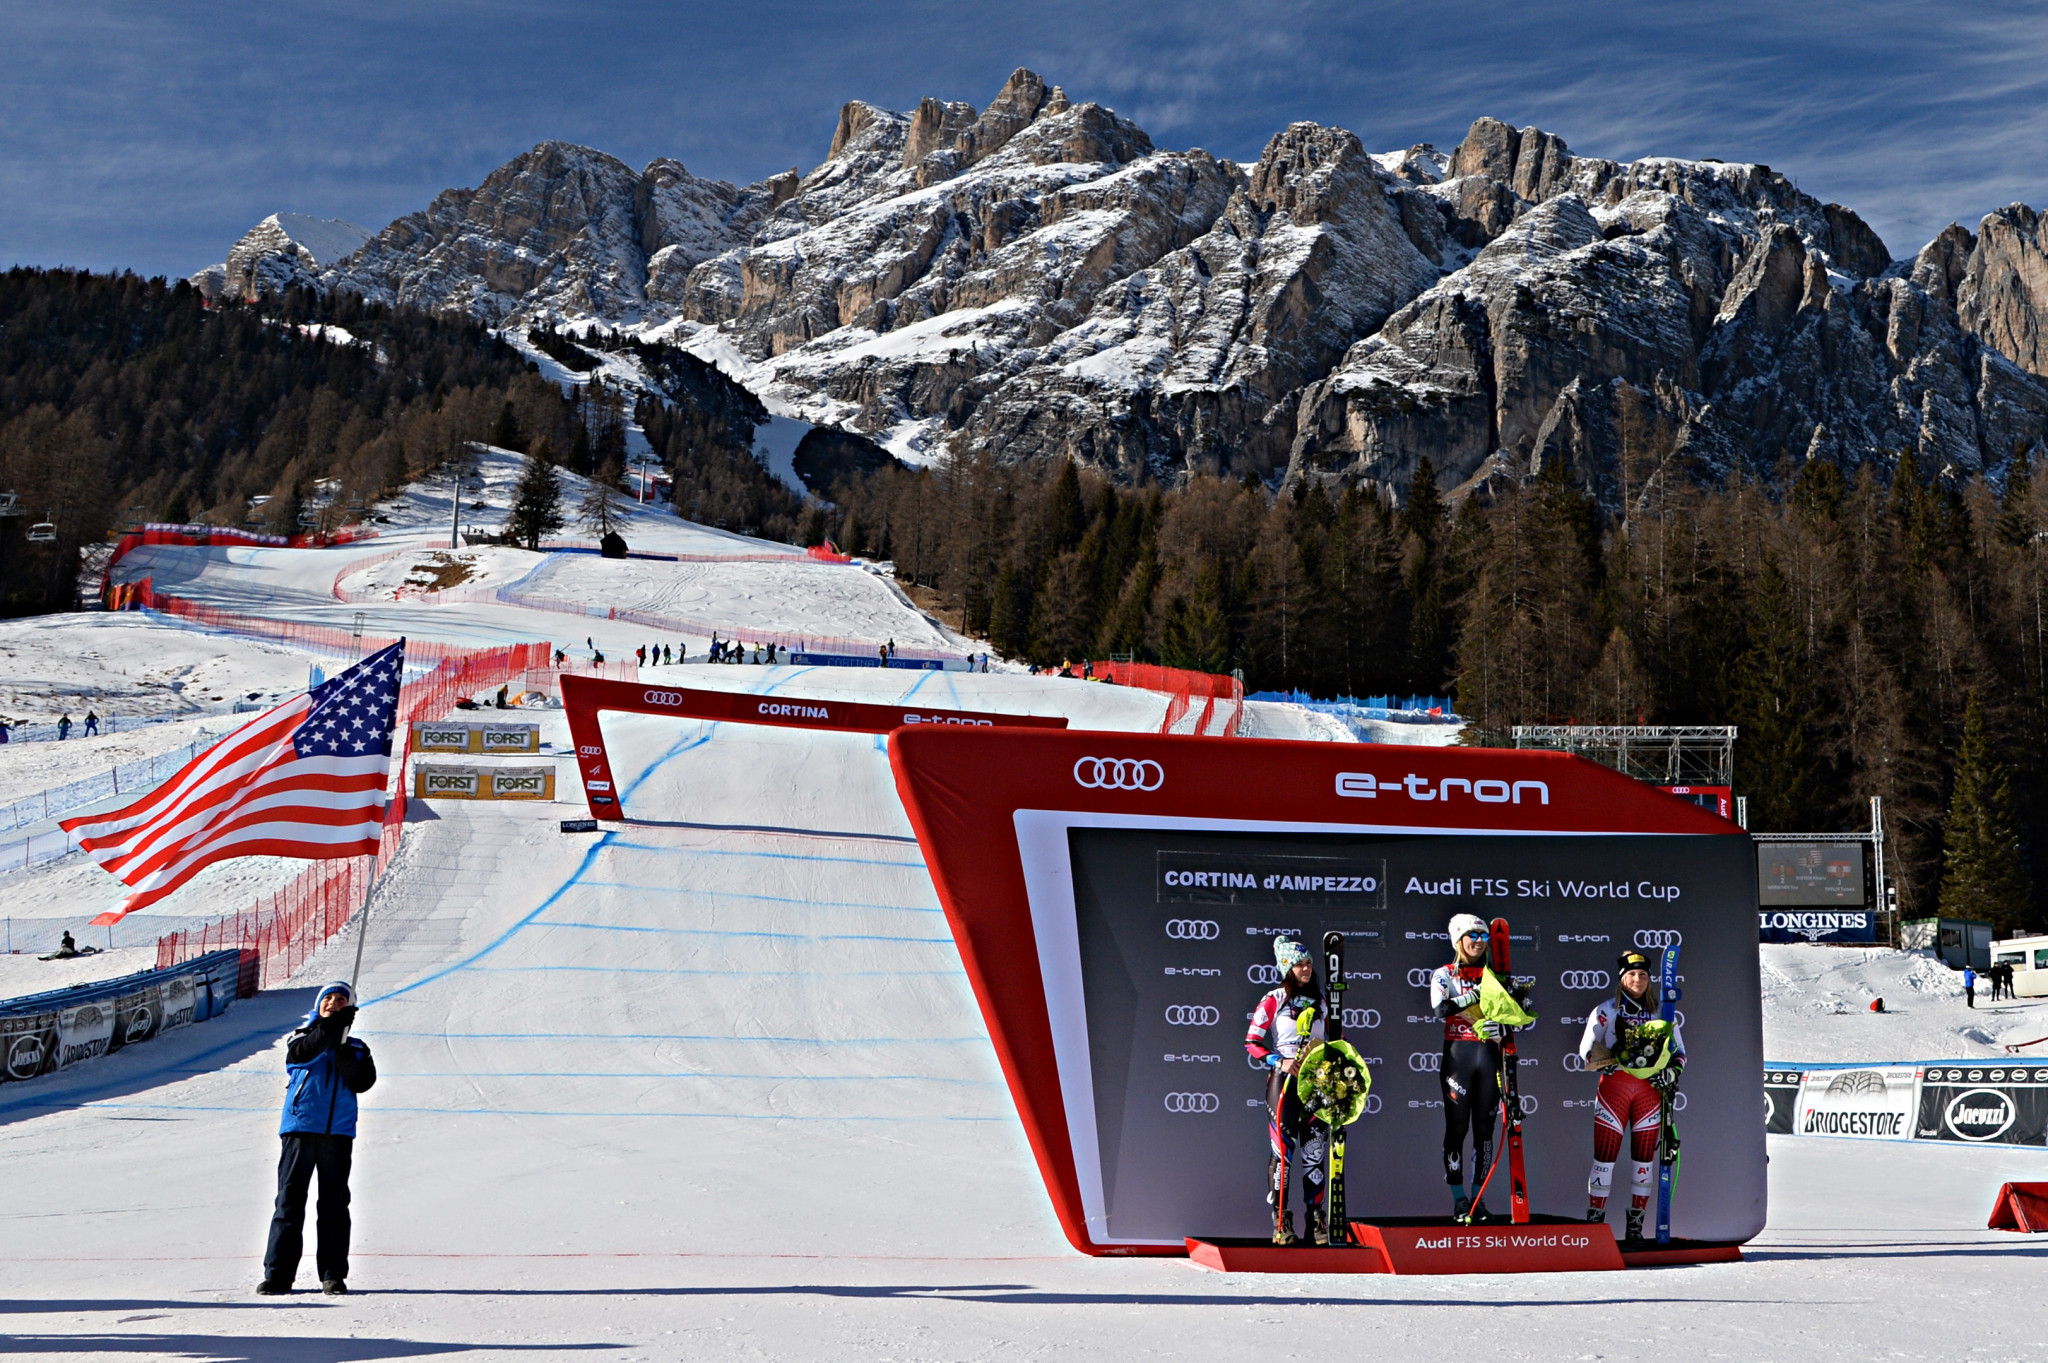 FIS to decide on status of Alpine World Cup Finals on Friday amid coronavirus outbreak